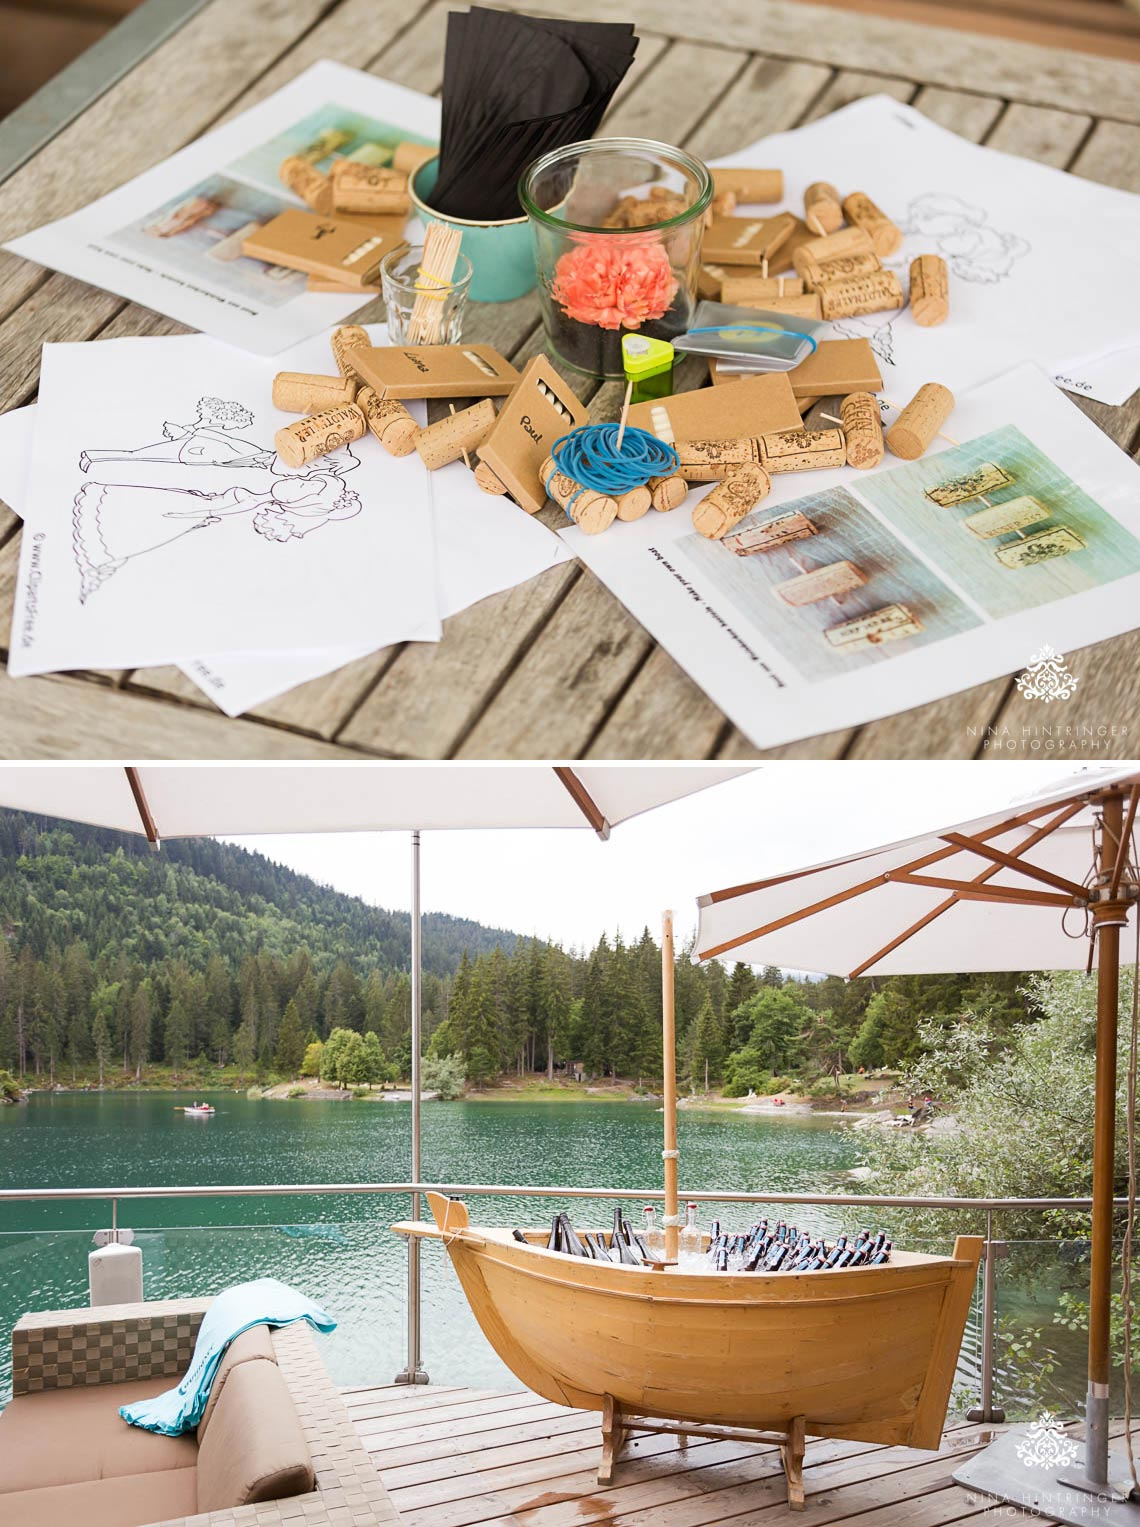 Lake Cauma Wedding with Jenny & Alex | Laax, Flims | Switzerland - Blog of Nina Hintringer Photography - Wedding Photography, Wedding Reportage and Destination Weddings